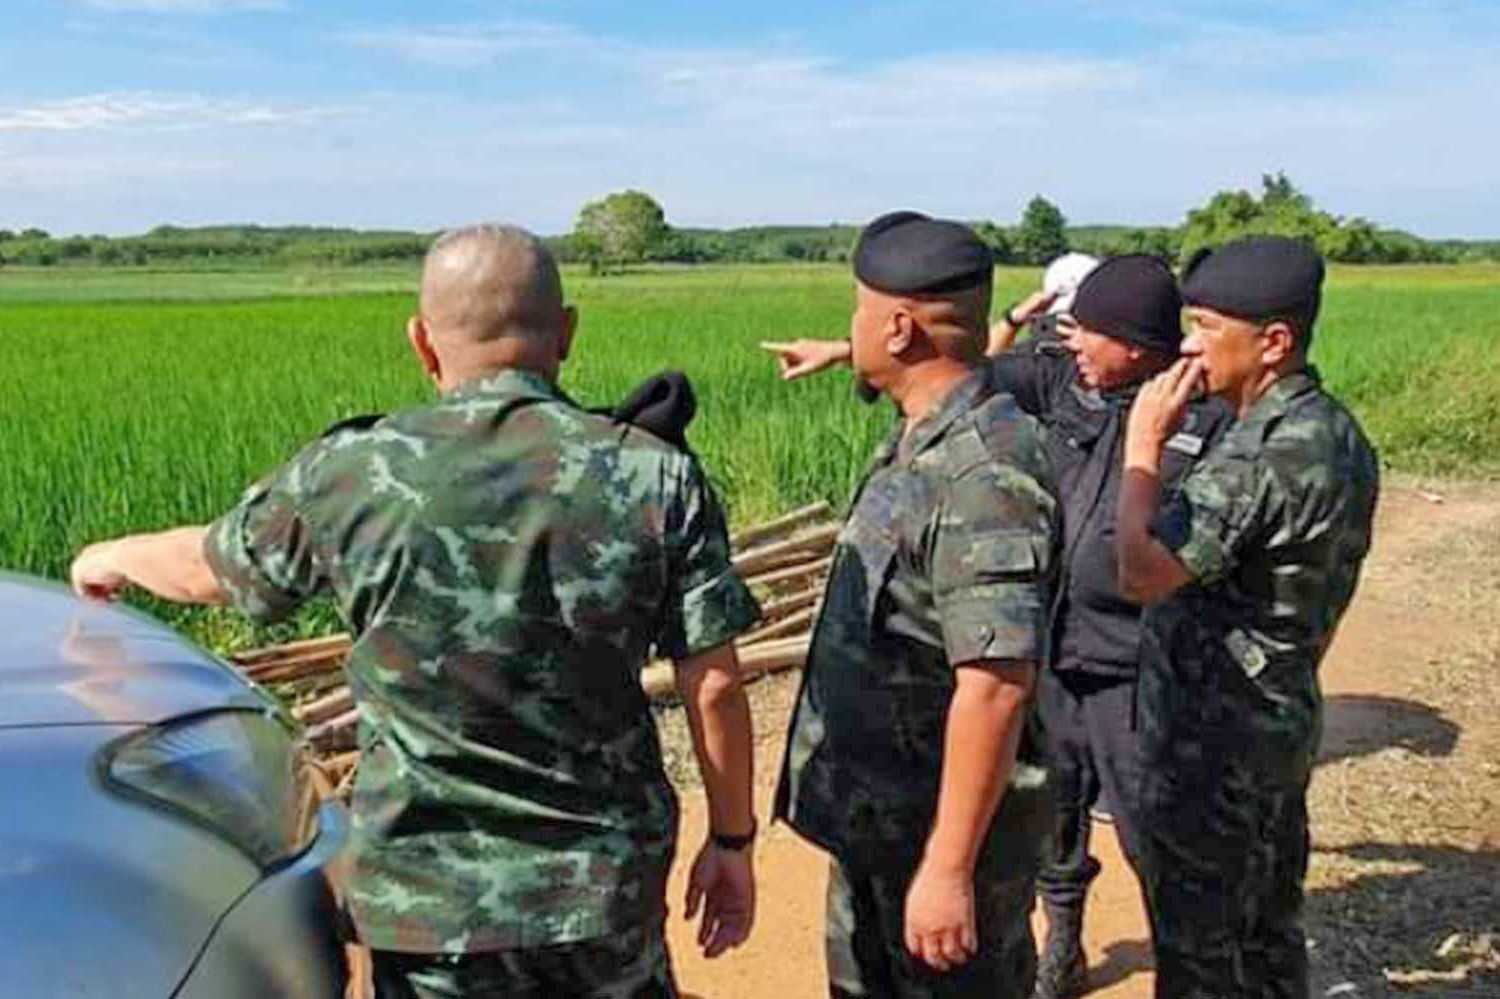 4 suspected insurgents shot dead in Pattani   News by Thaiger